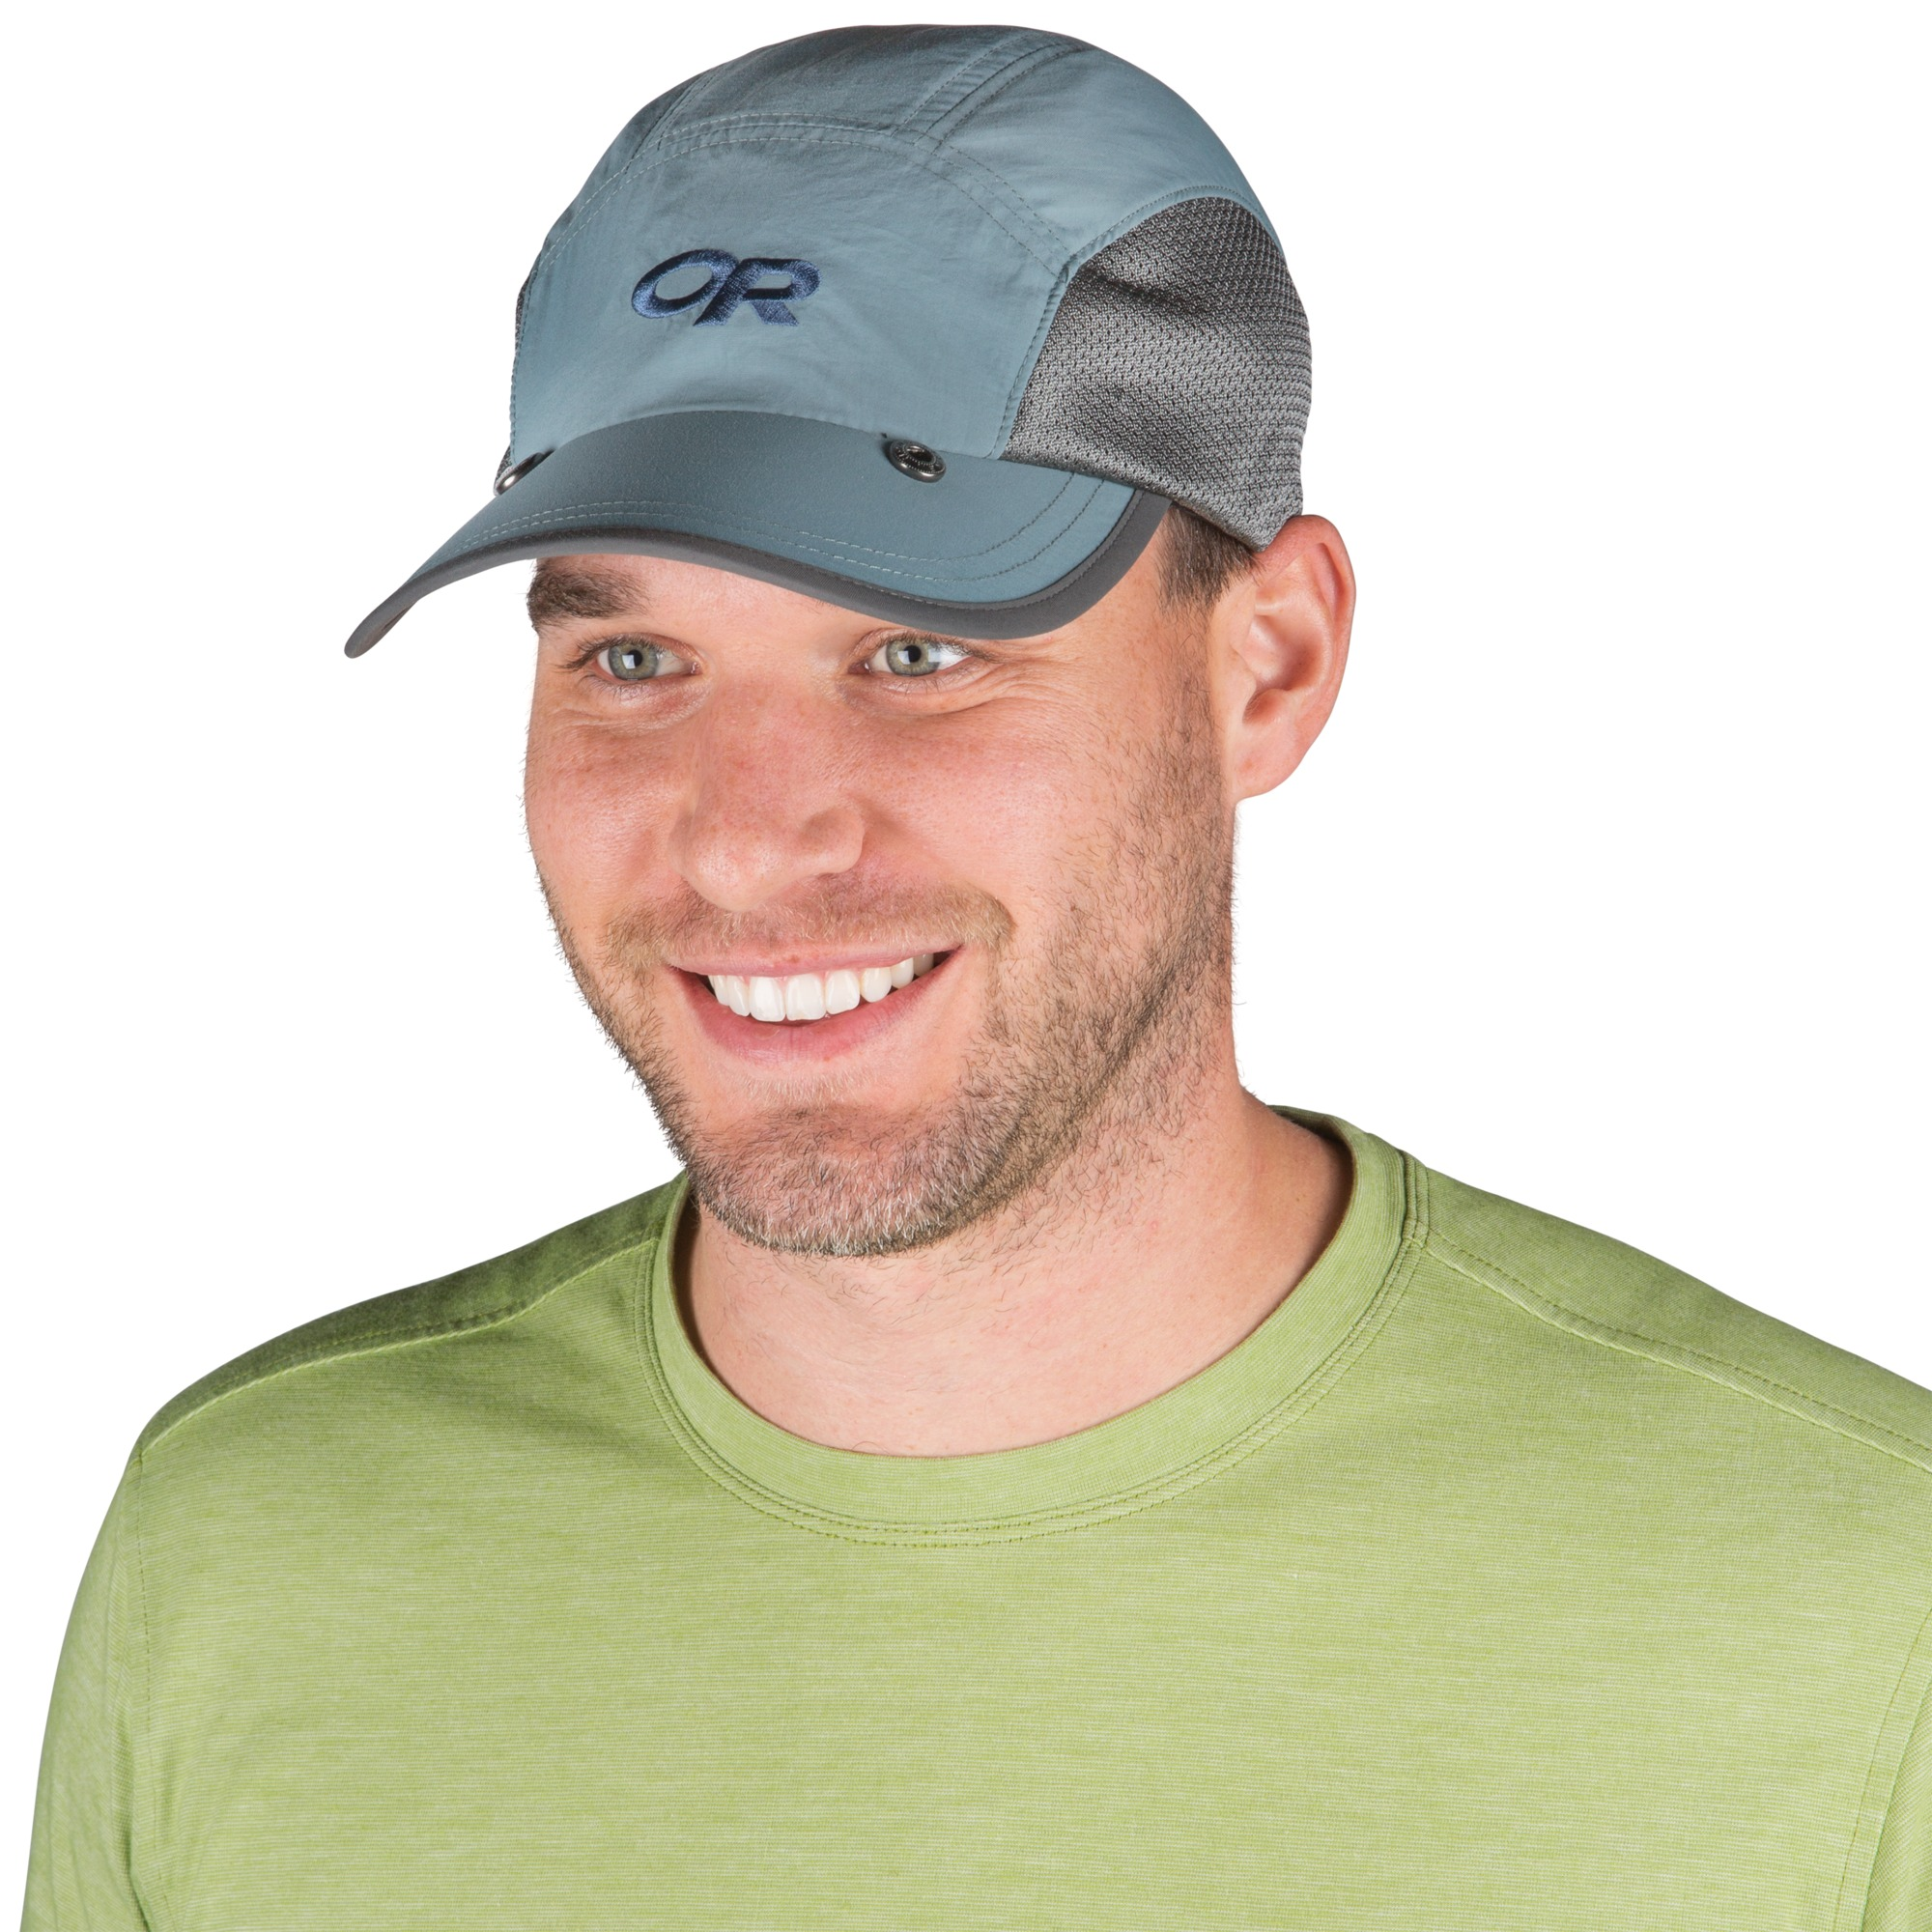 80c3c343 Sun Runner Cap - khaki | Outdoor Research